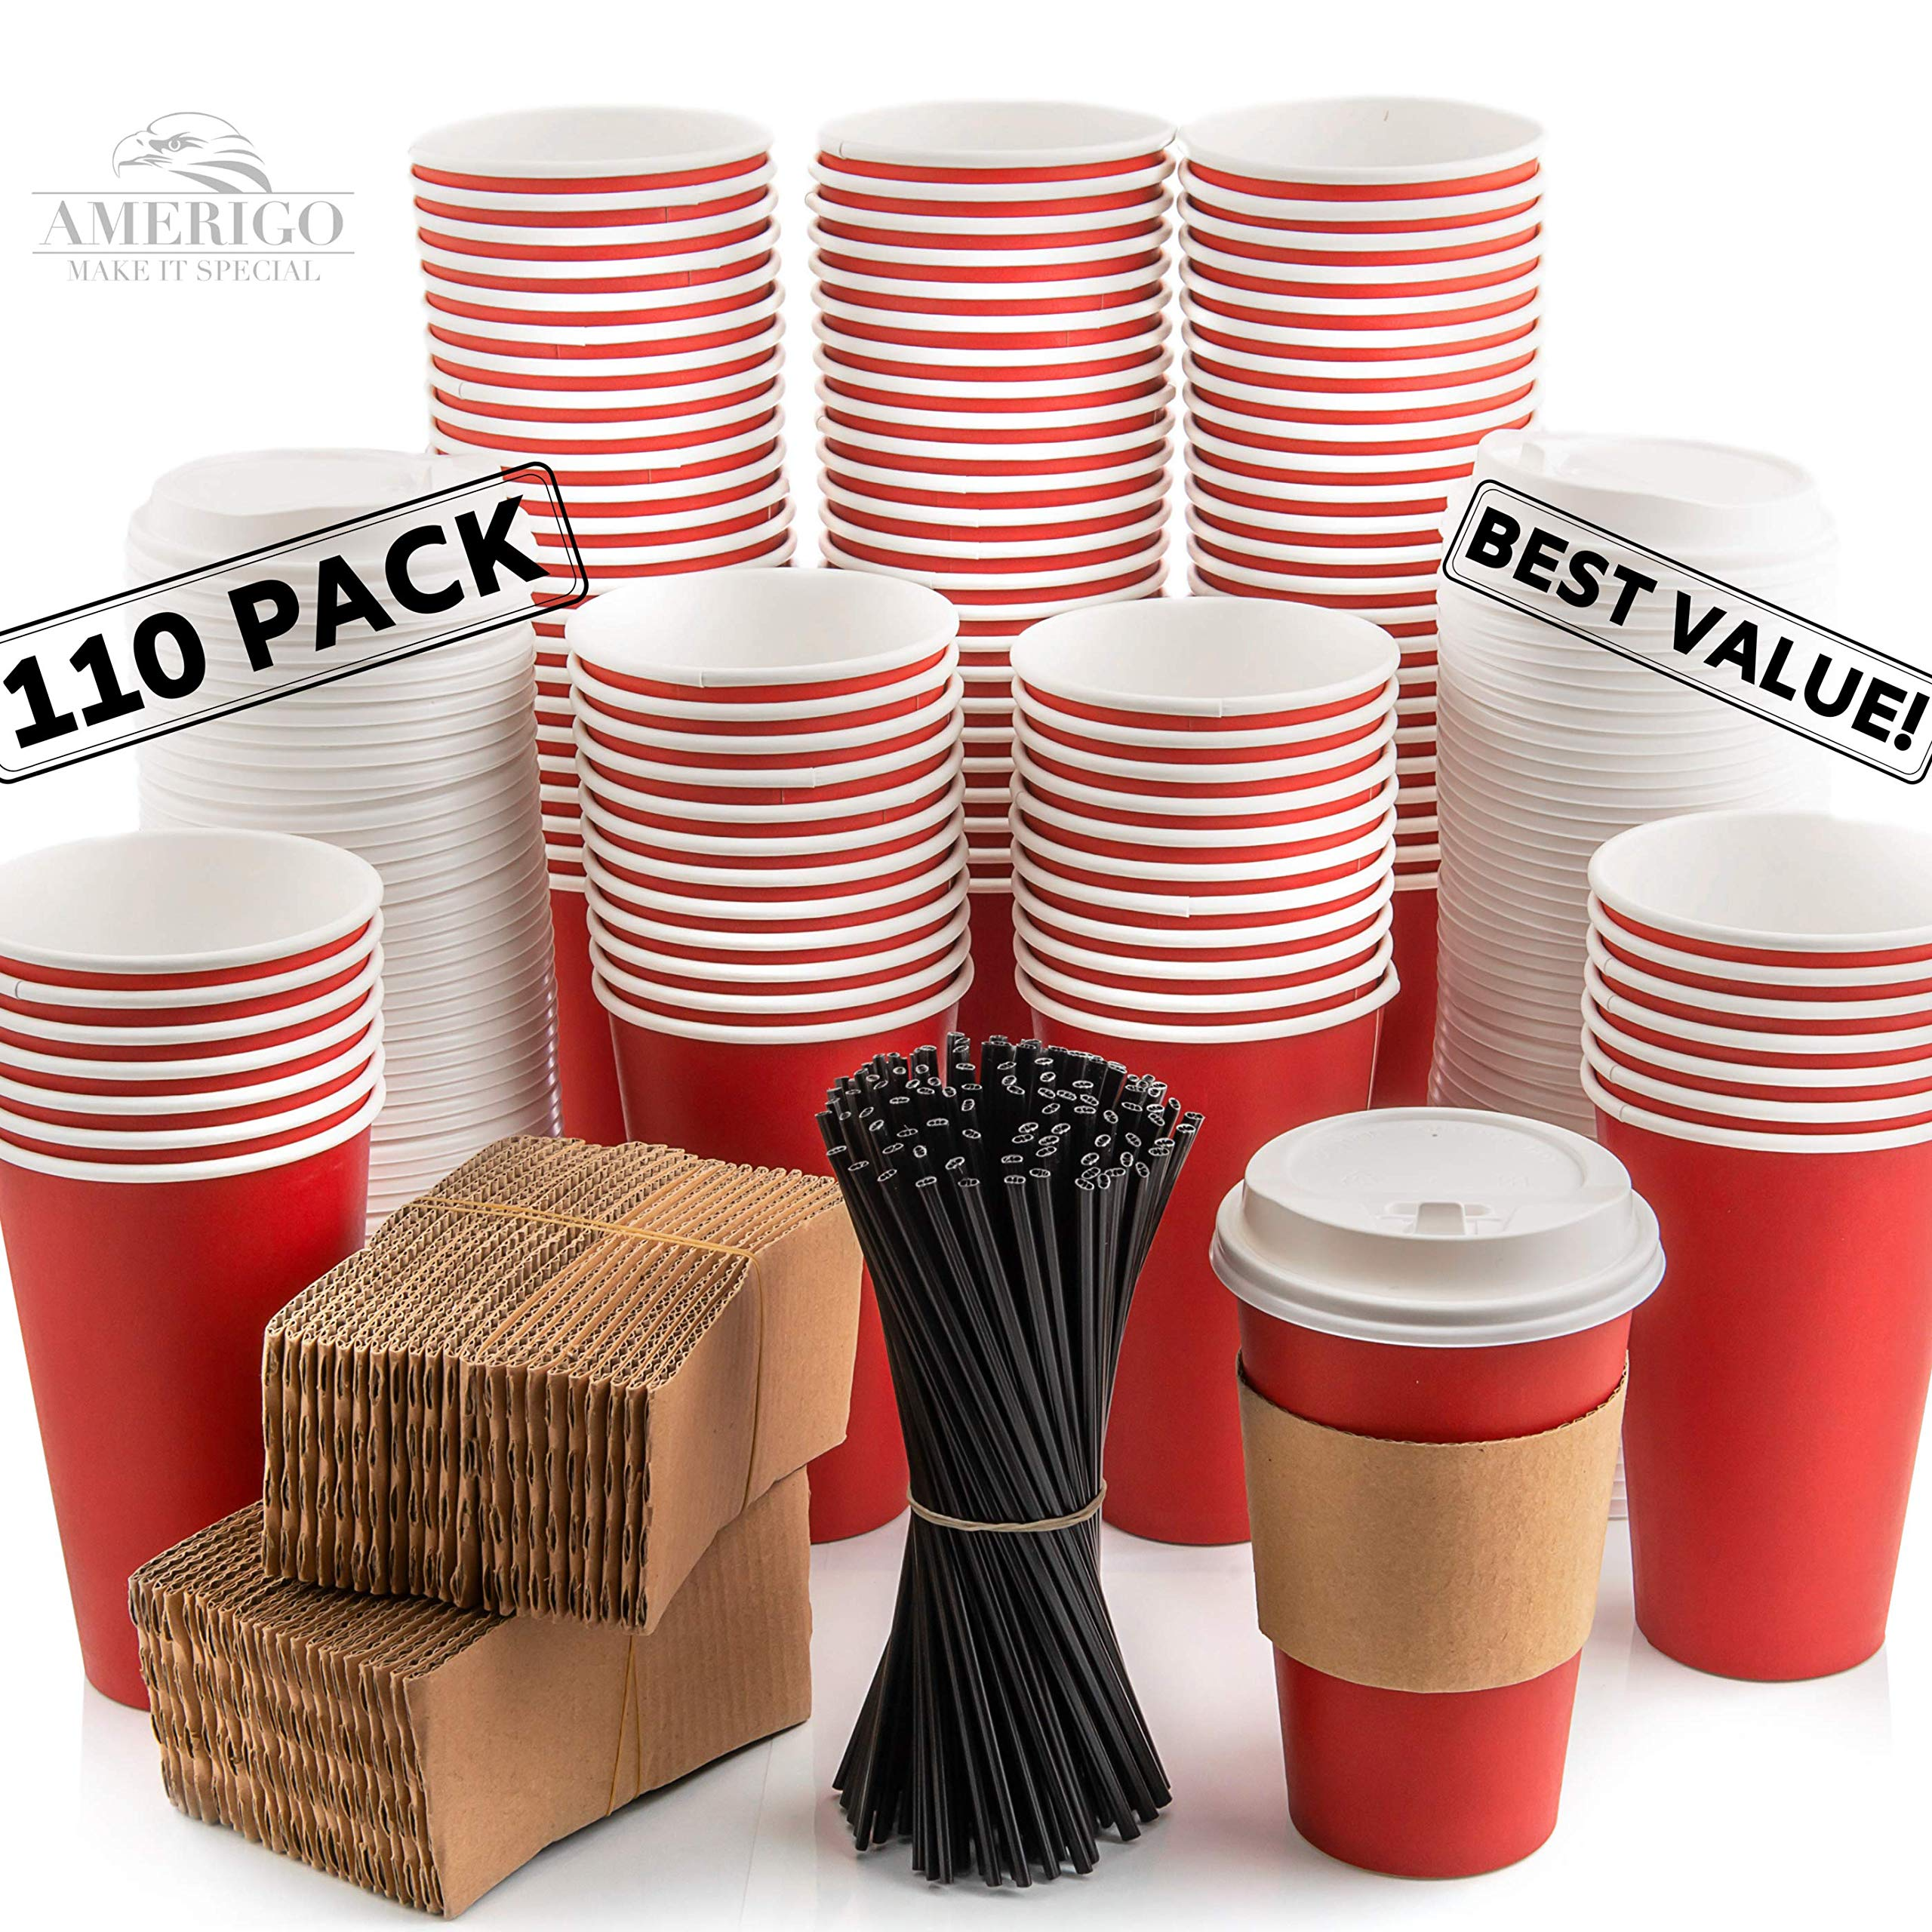 110 Pack Disposable Coffee Cups with Lids - Premium Quality 16 oz To Go Coffee Cups with Sleeves, Tight Lids to Prevent Leaks & Straws - This Paper Hot Cup Holds Shape With Hot Drinks - Cherry Red by Amerigo